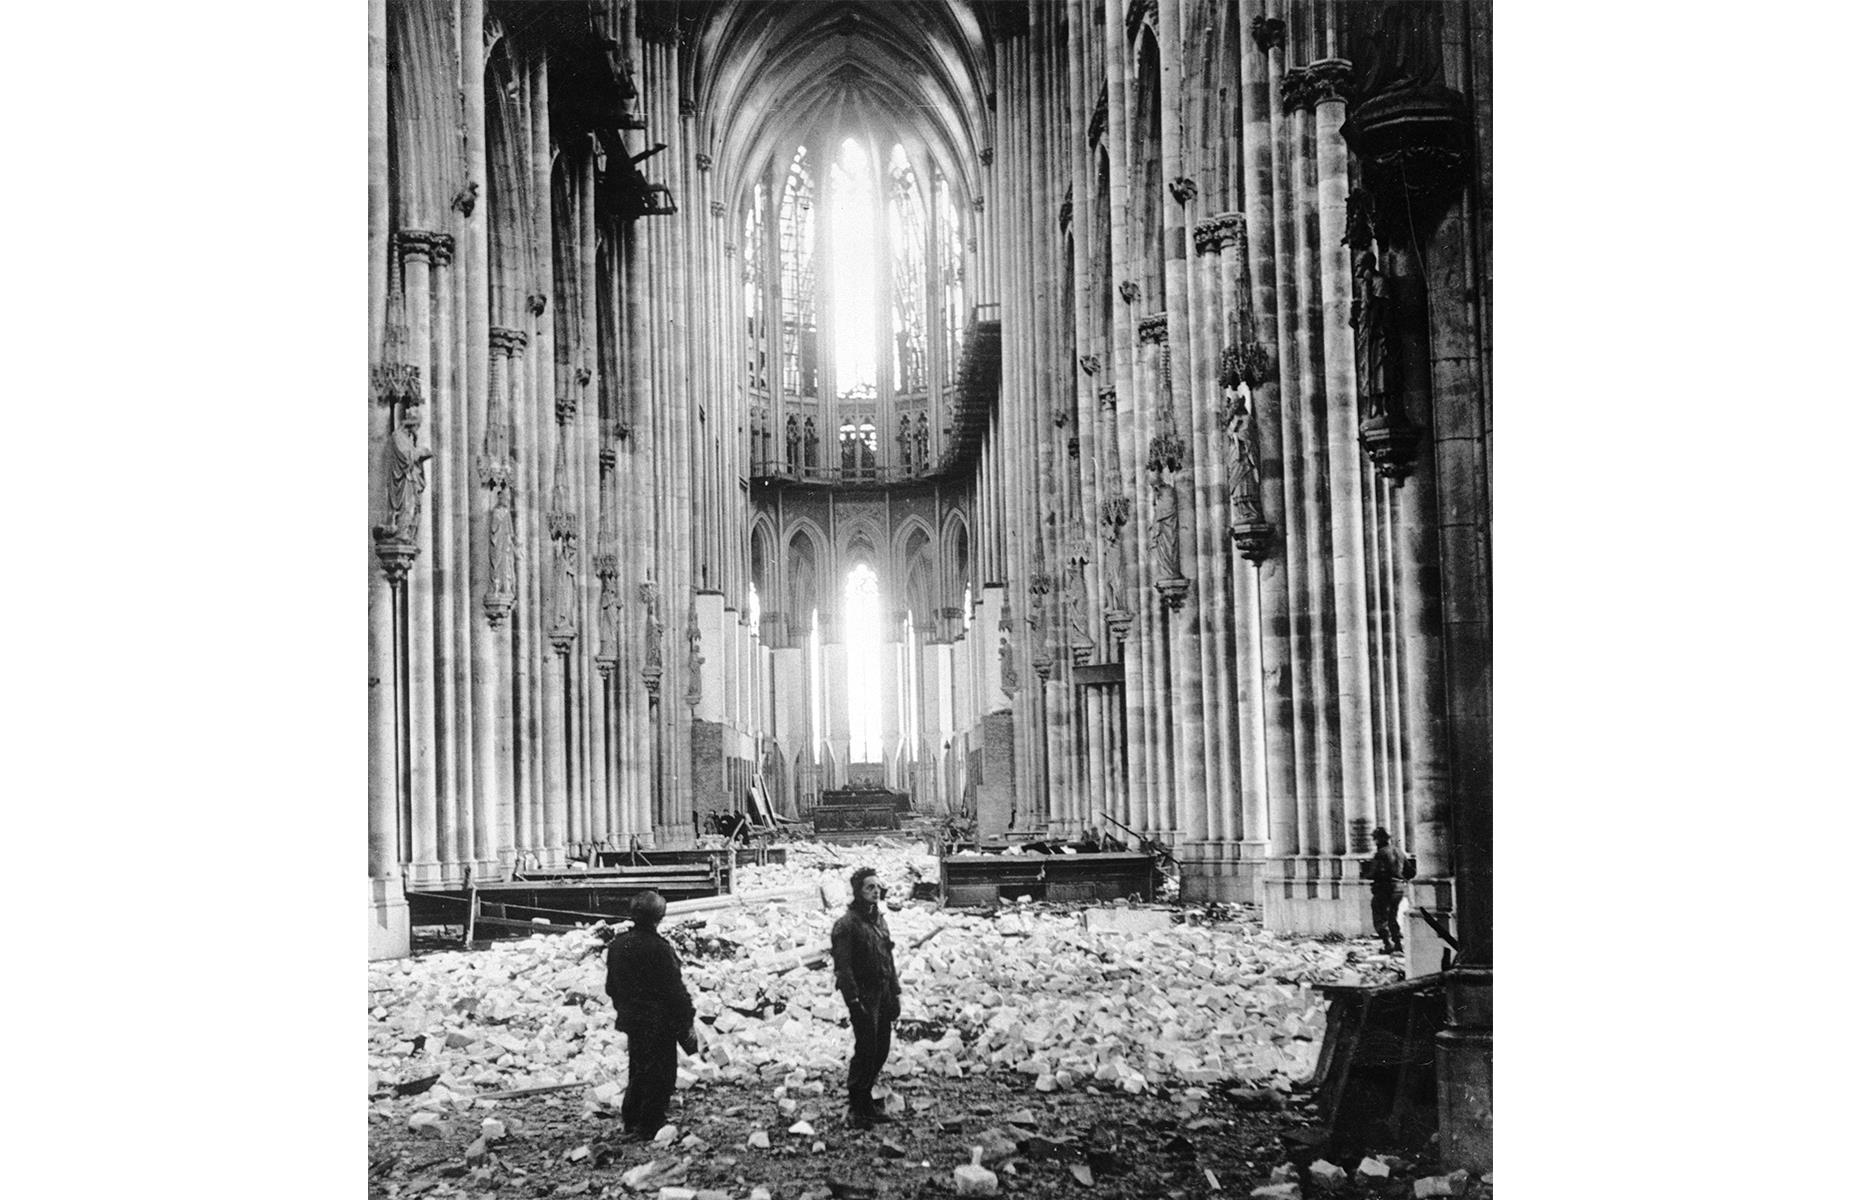 Slide 12 of 32: Cologne Cathedral dates rightback to the 13th century, although much of it was constructed during the 1800s.But the striking sacred building almost didn't survive the 20th century.Cologne was hit hard in the Second World War, with buildings razed to the ground and the city centerdevastated. The cathedral wasn't sparedeither.It's thought it took 14 bomb hits during the war, its lofty spires a useful reference point for the Allied Forces. Here US soldiers stand among the rubble in 1945, with sizeable holes in the vaulted ceiling.